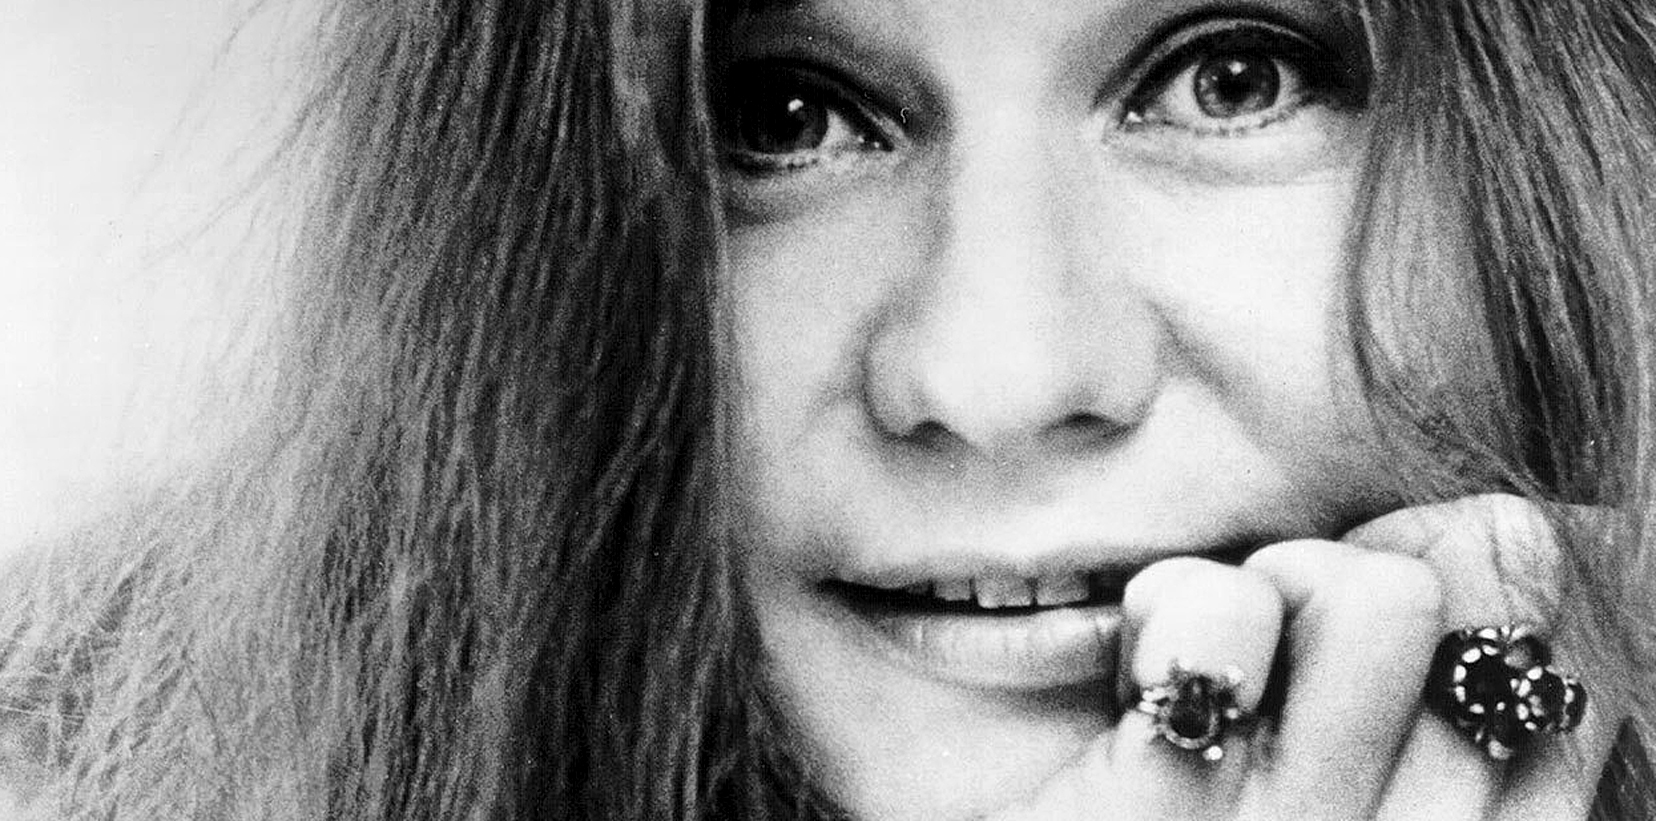 Janis Joplin And The Full-Tilt Boogie Band – Live In Honolulu – 1970 – Past Daily Backstage Pass – (Janis Joplin: January 19, 1943 – October 4, 1970)